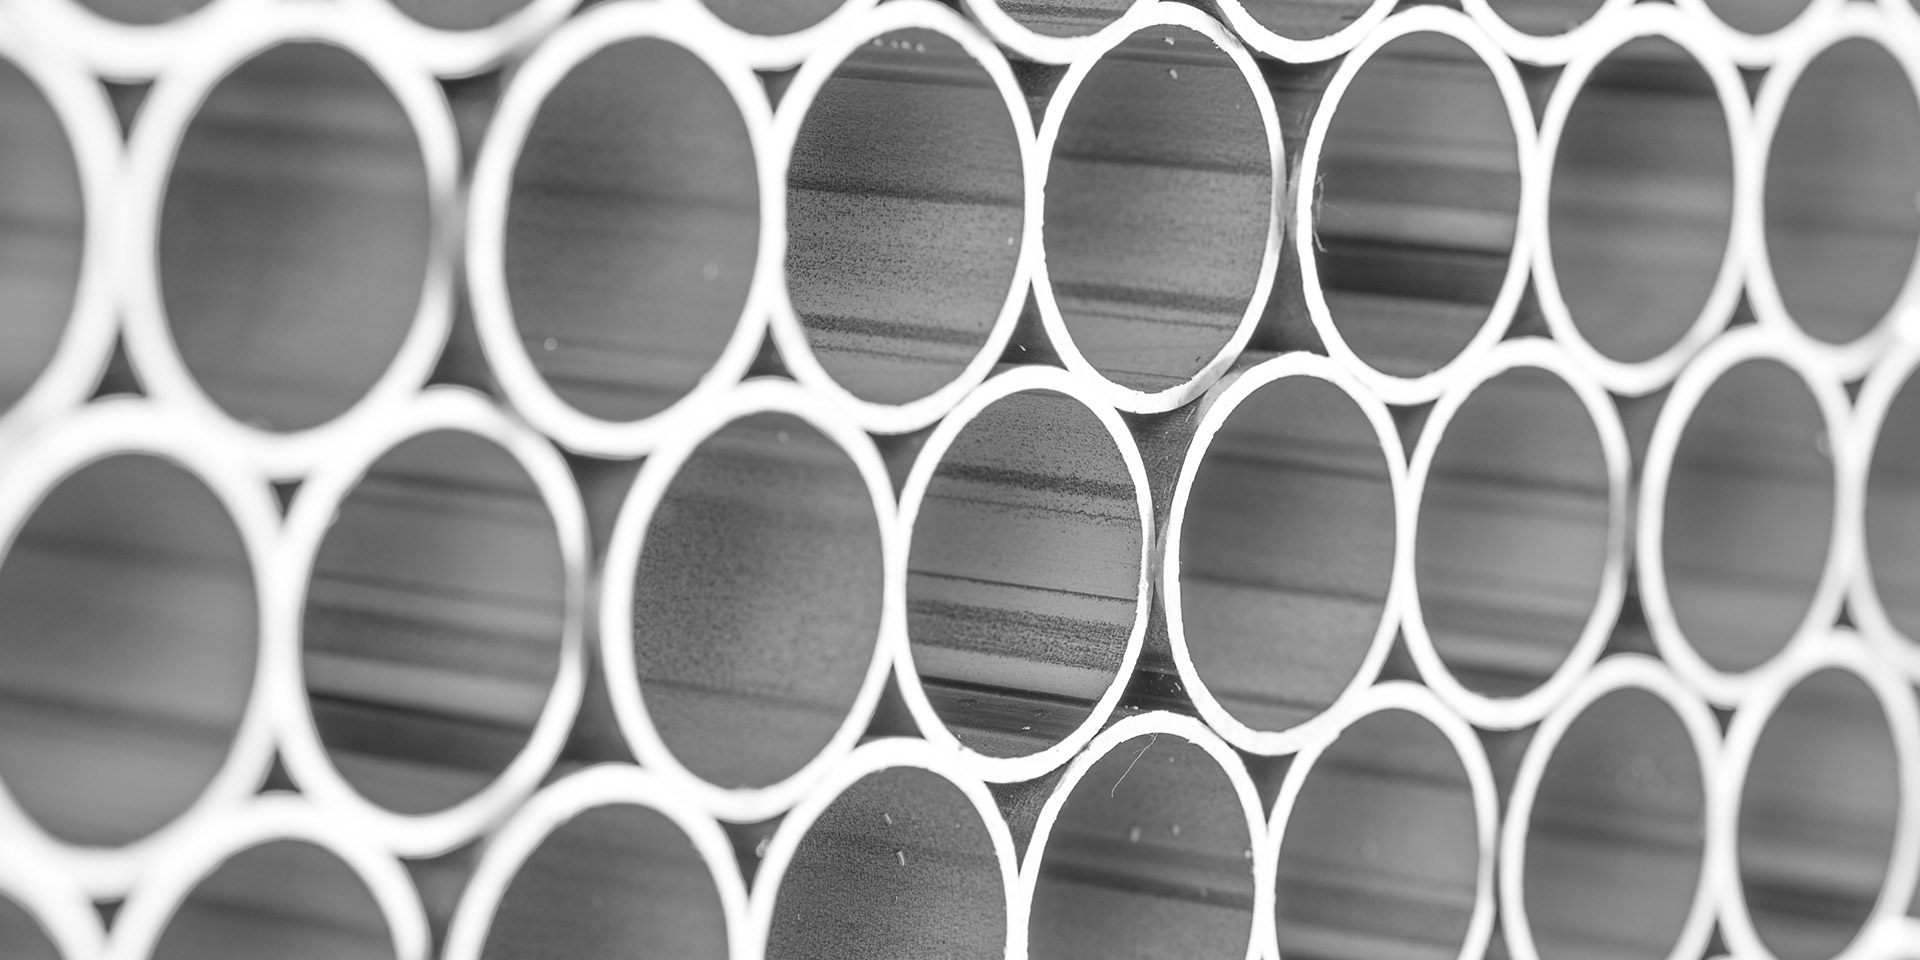 Array of stainless steel tubes